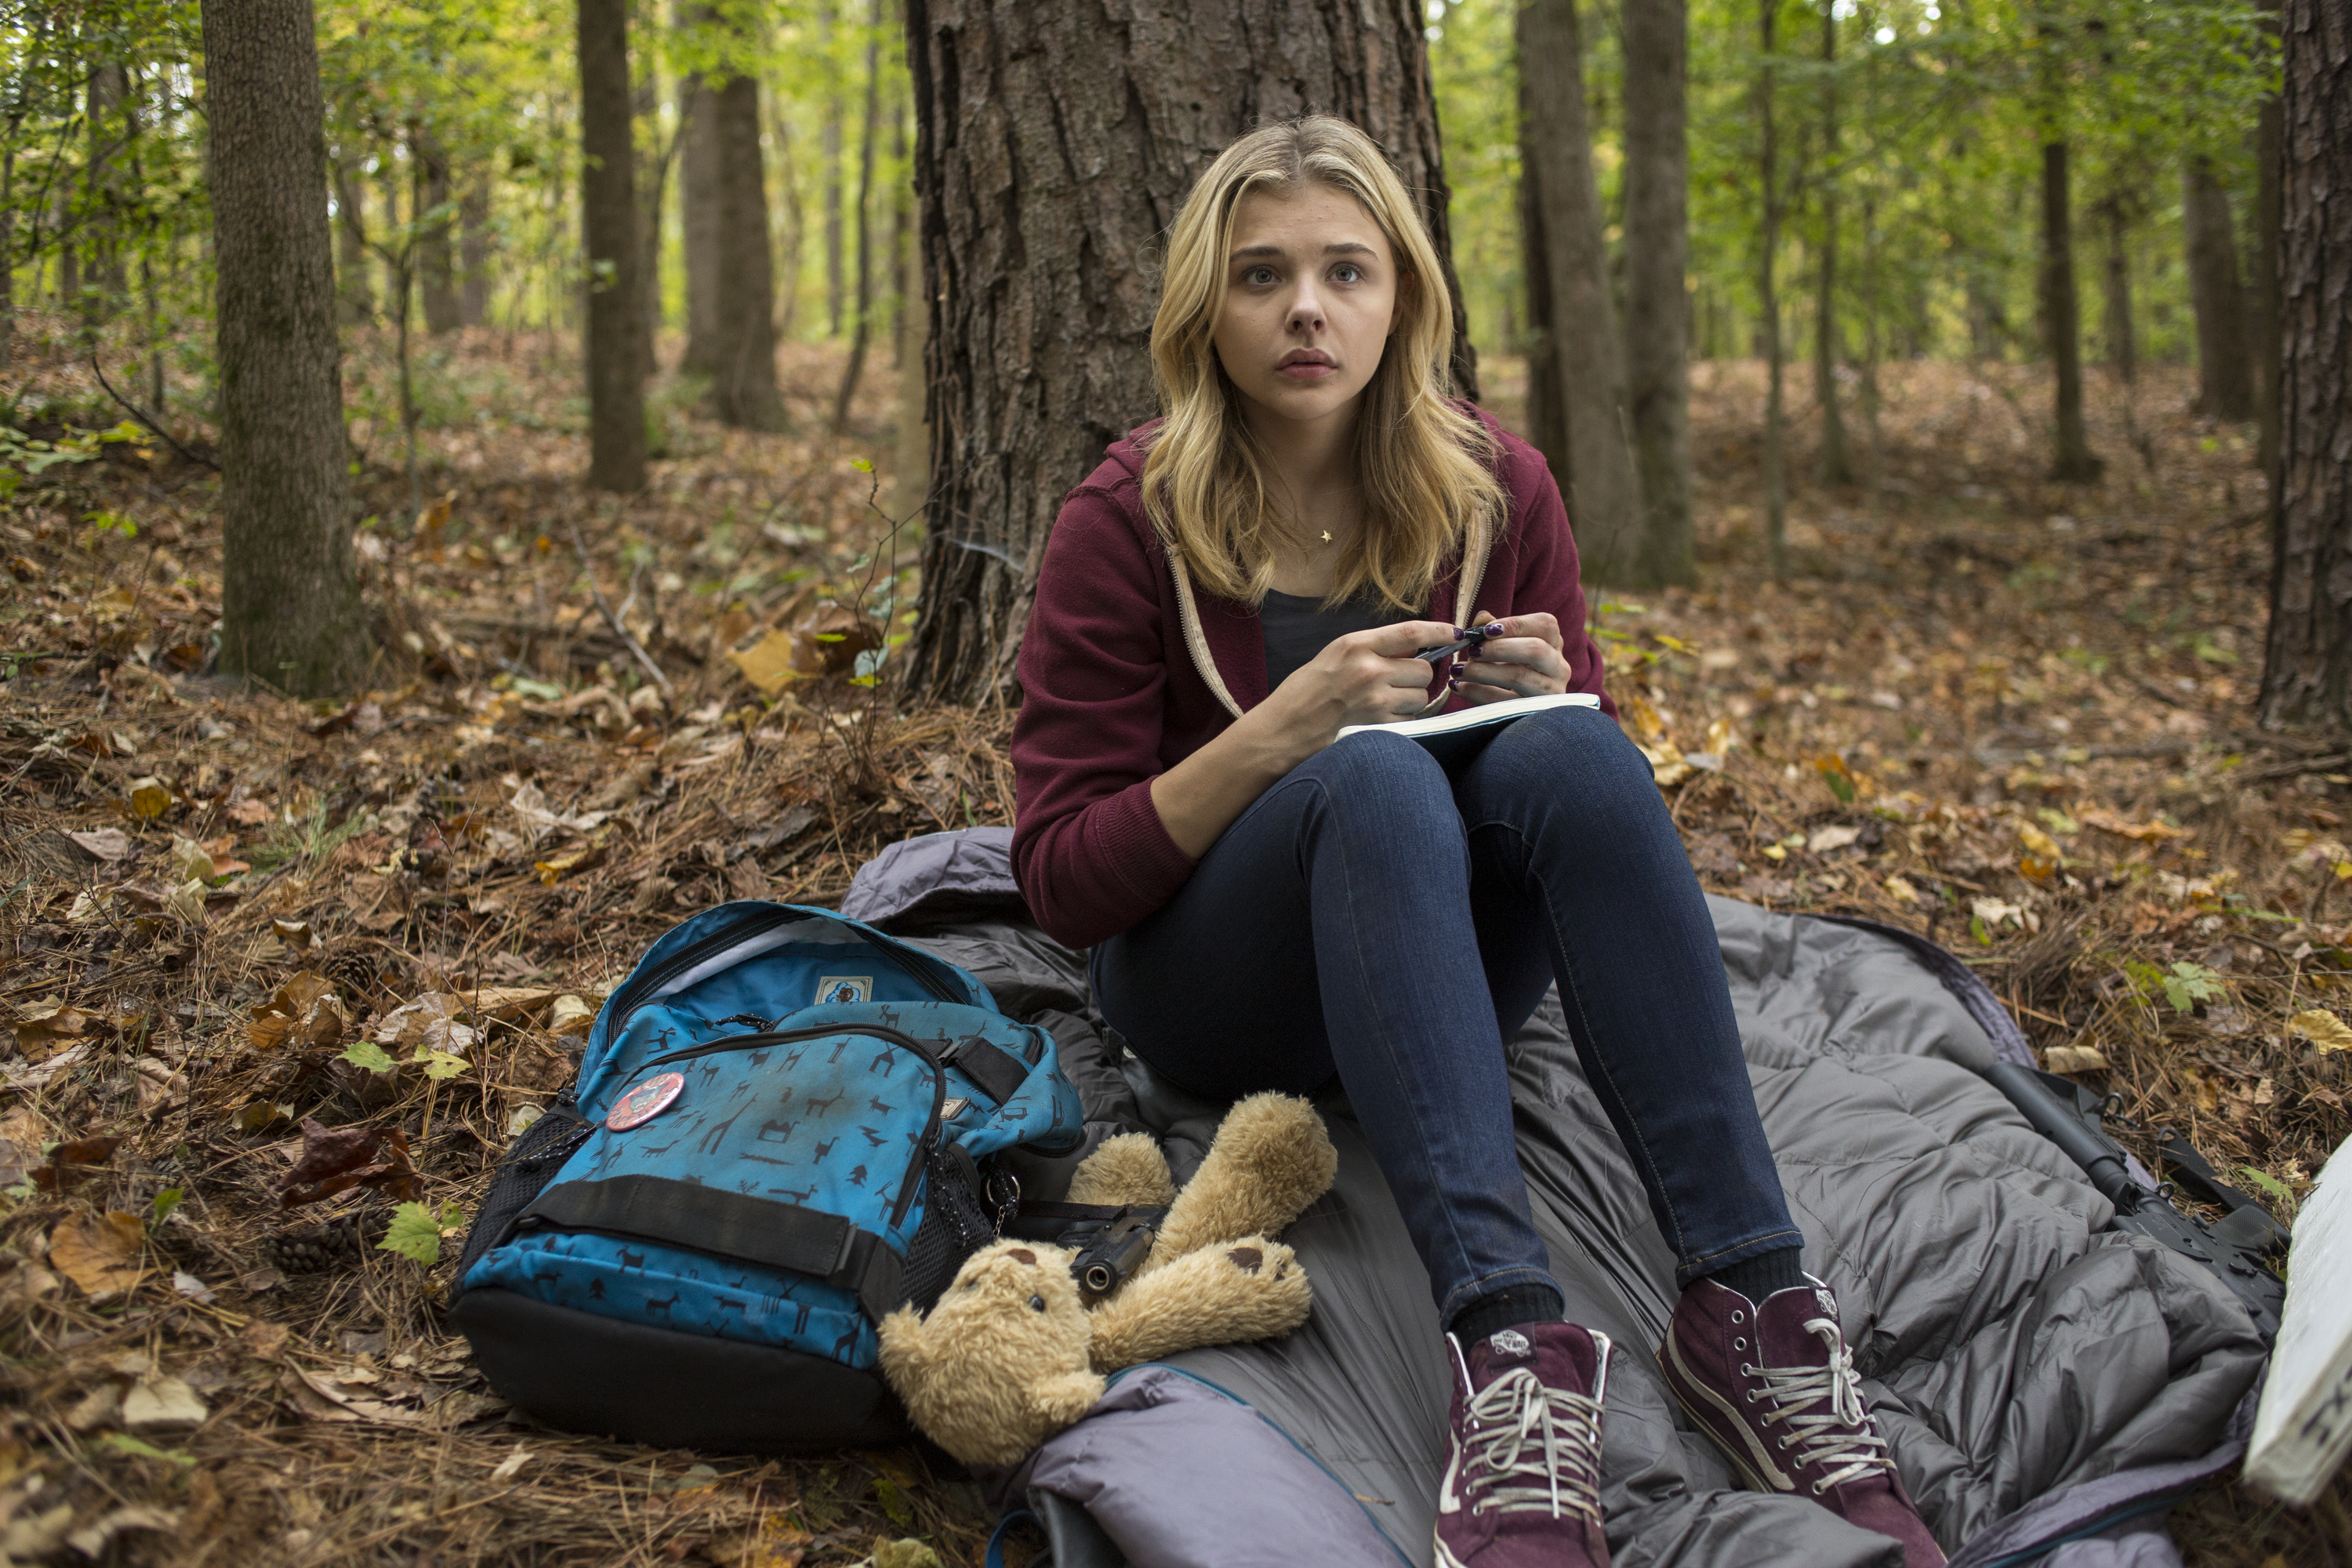 Chloë Grace Moretz in The 5th Wave.